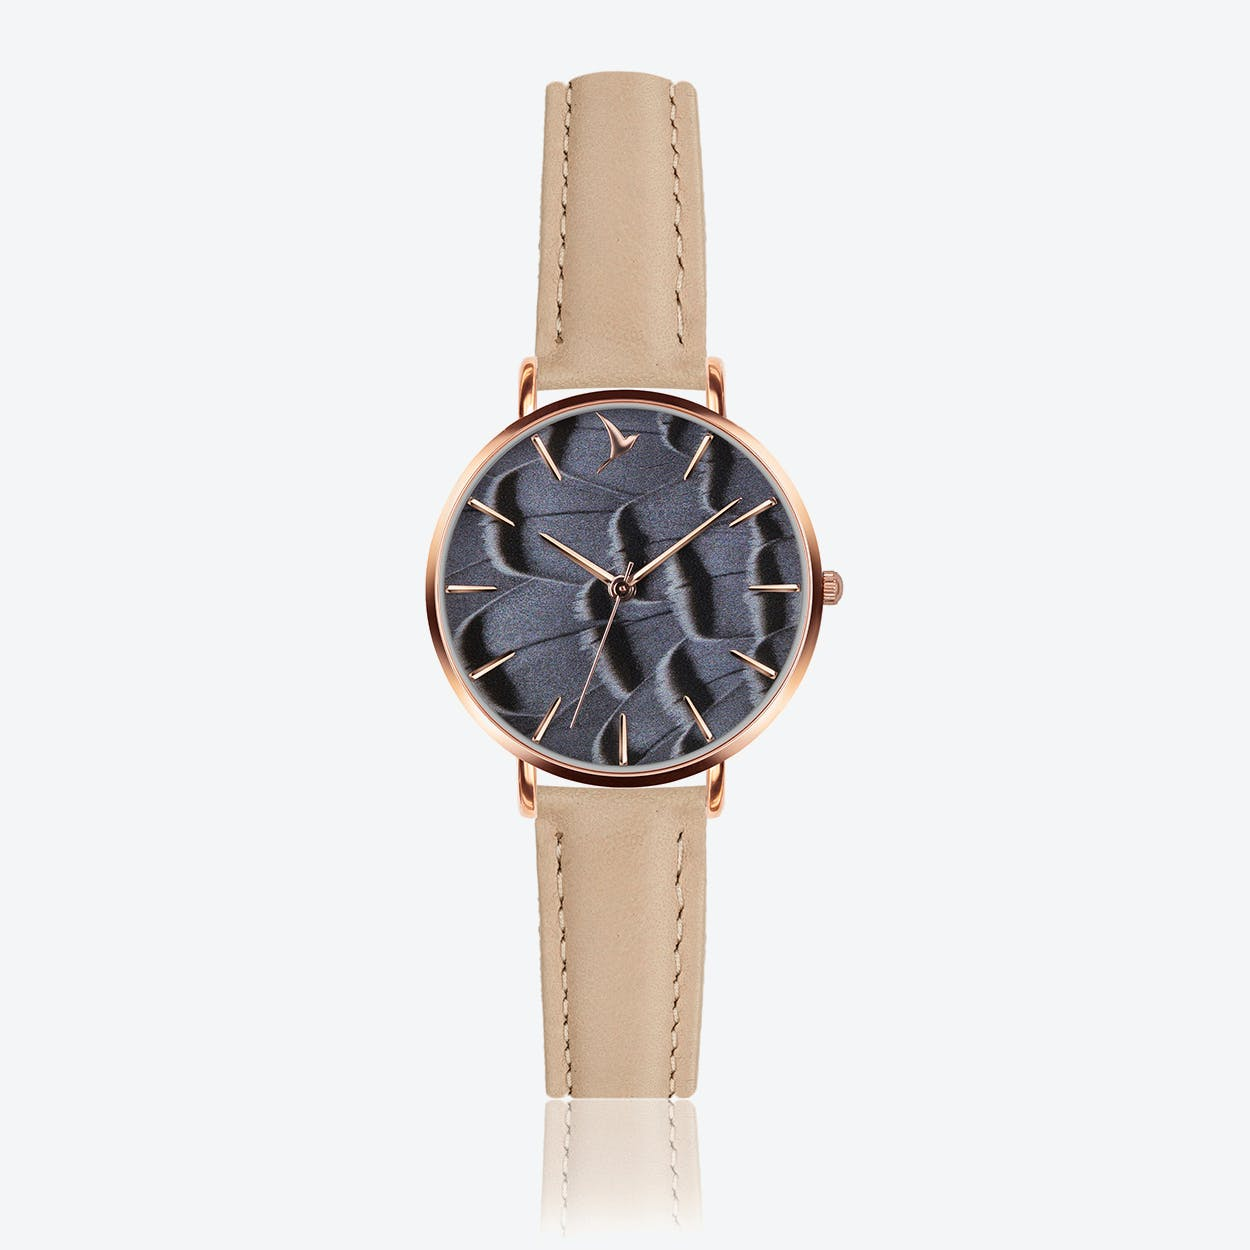 Feather Print Watch in Cream Powder Leather/ Rose Gold Case ⌀33